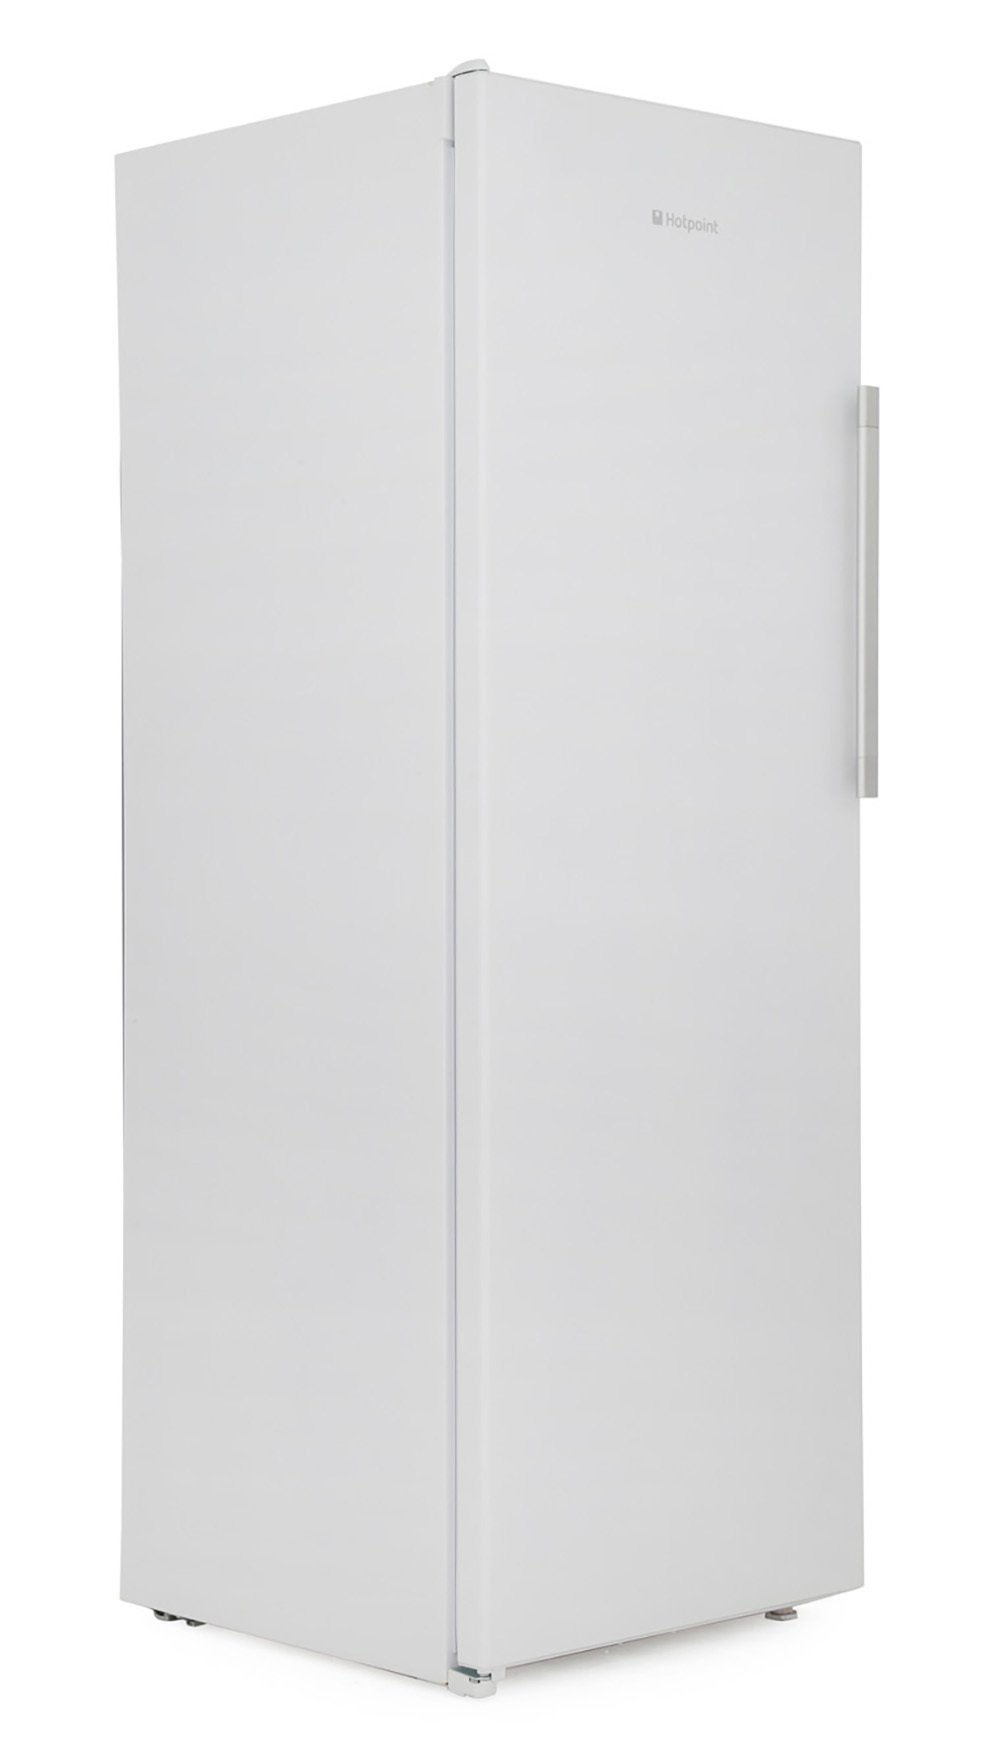 Hotpoint UH6F1CW Frost Free Tall Freezer